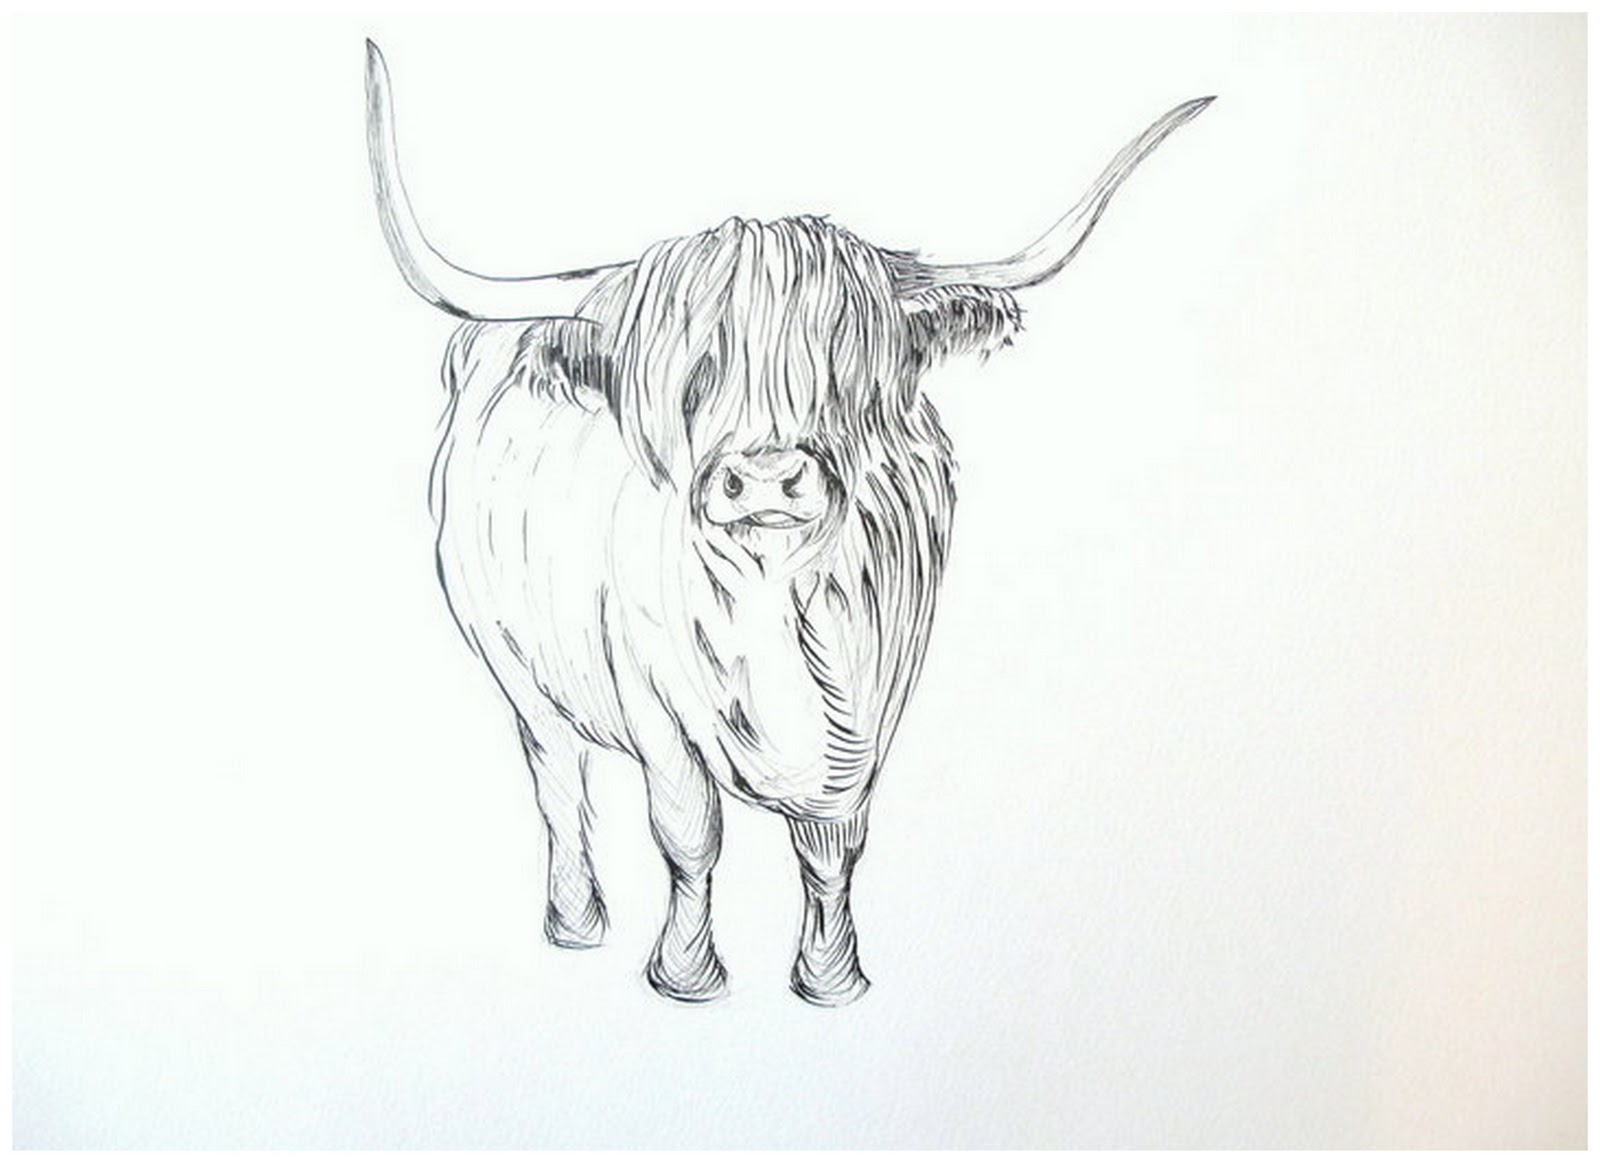 Details about HELEN ROSE Limited Print of my HIGHLAND COW original.